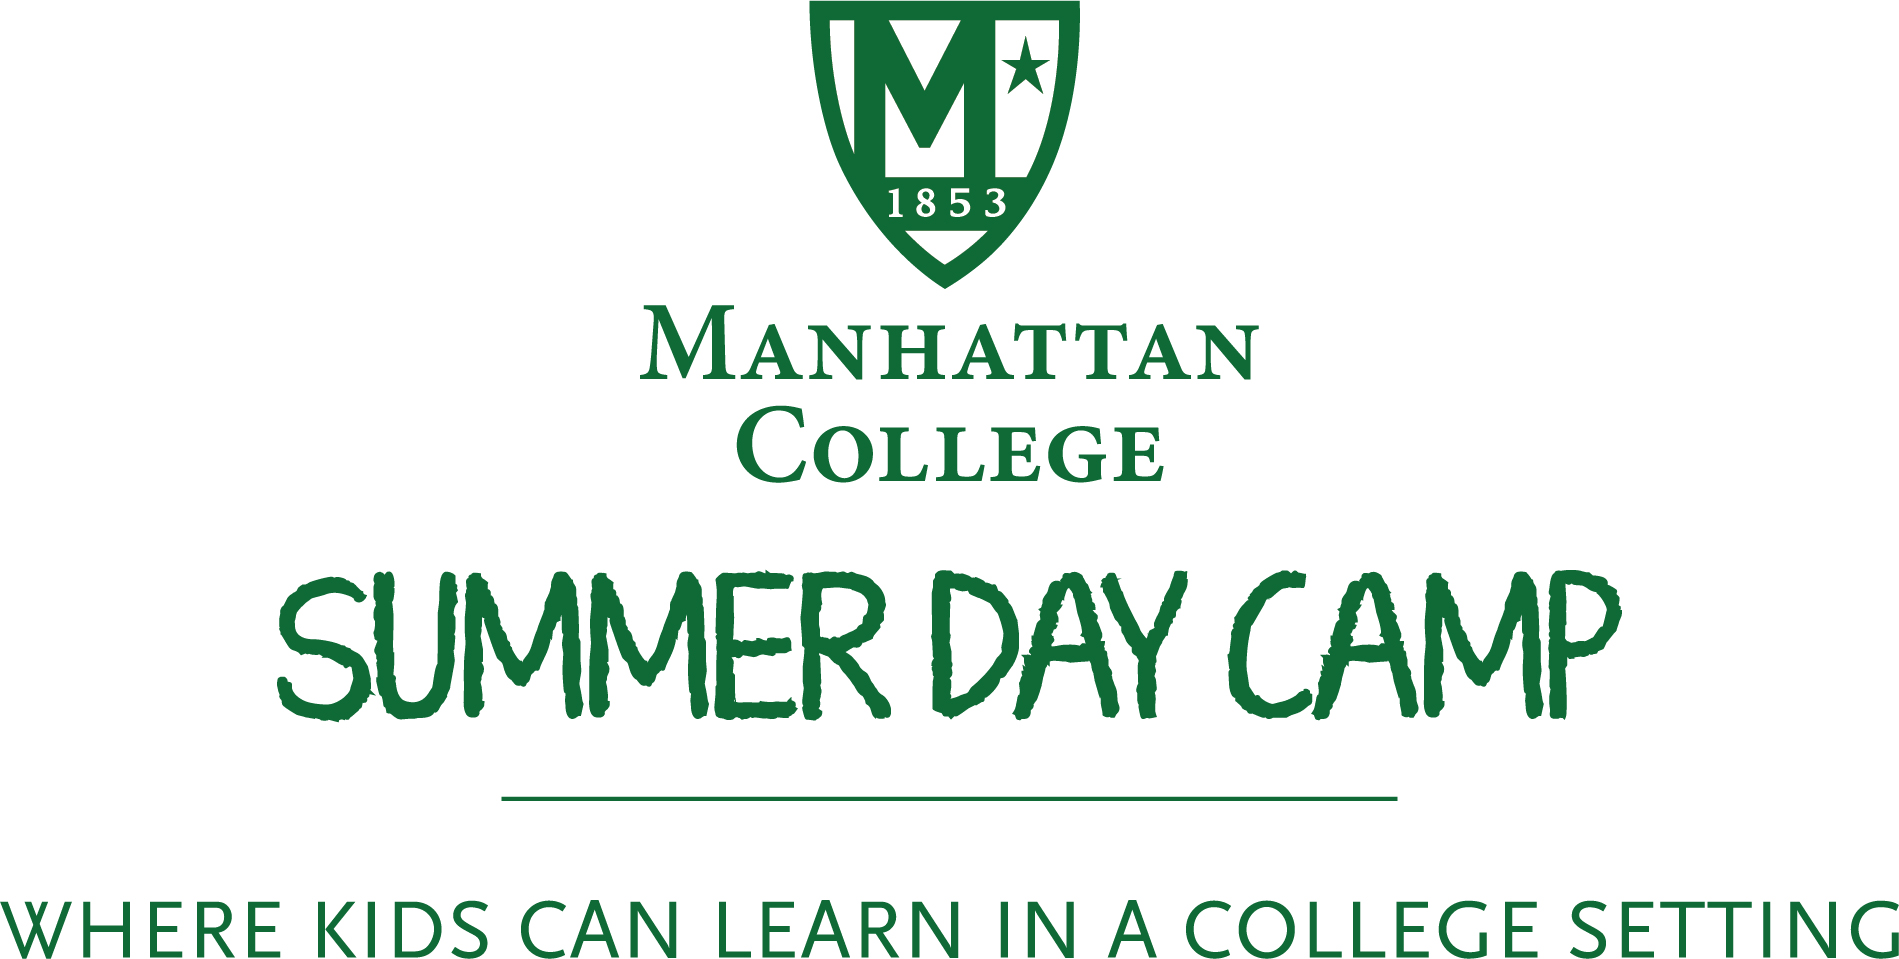 Manhattan College Summer Day Camp: Where Kids Can Learn in a College Setting